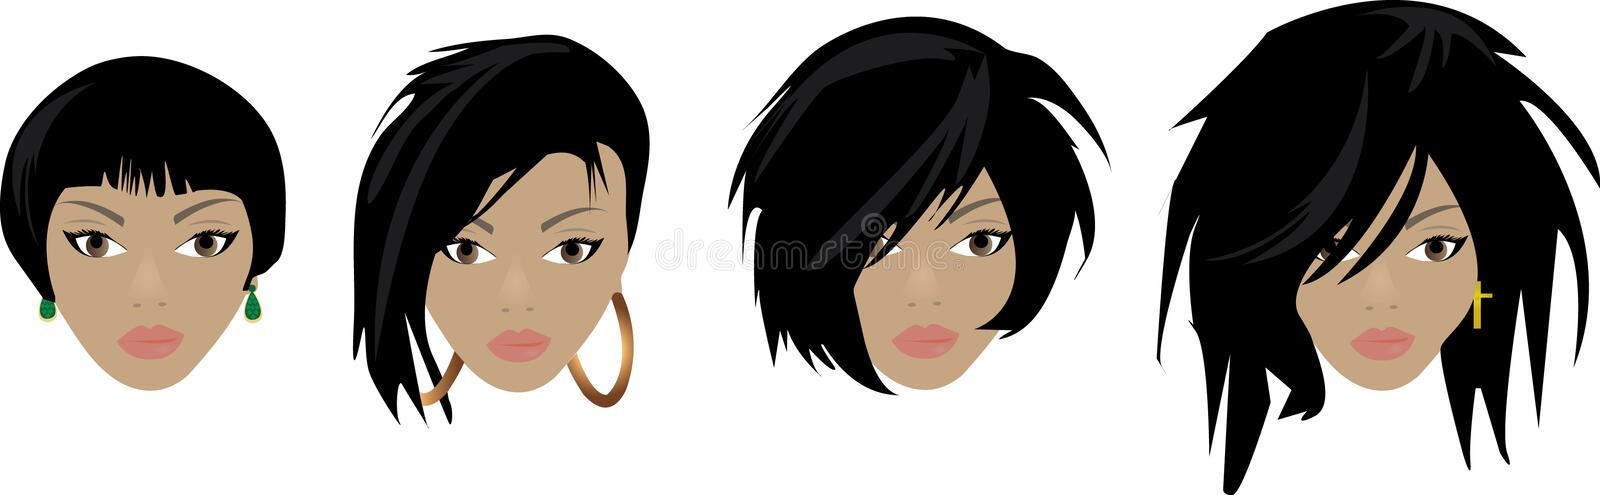 Download Different Hair Styles stock illustration. Illustration of hairstyle - 17866921